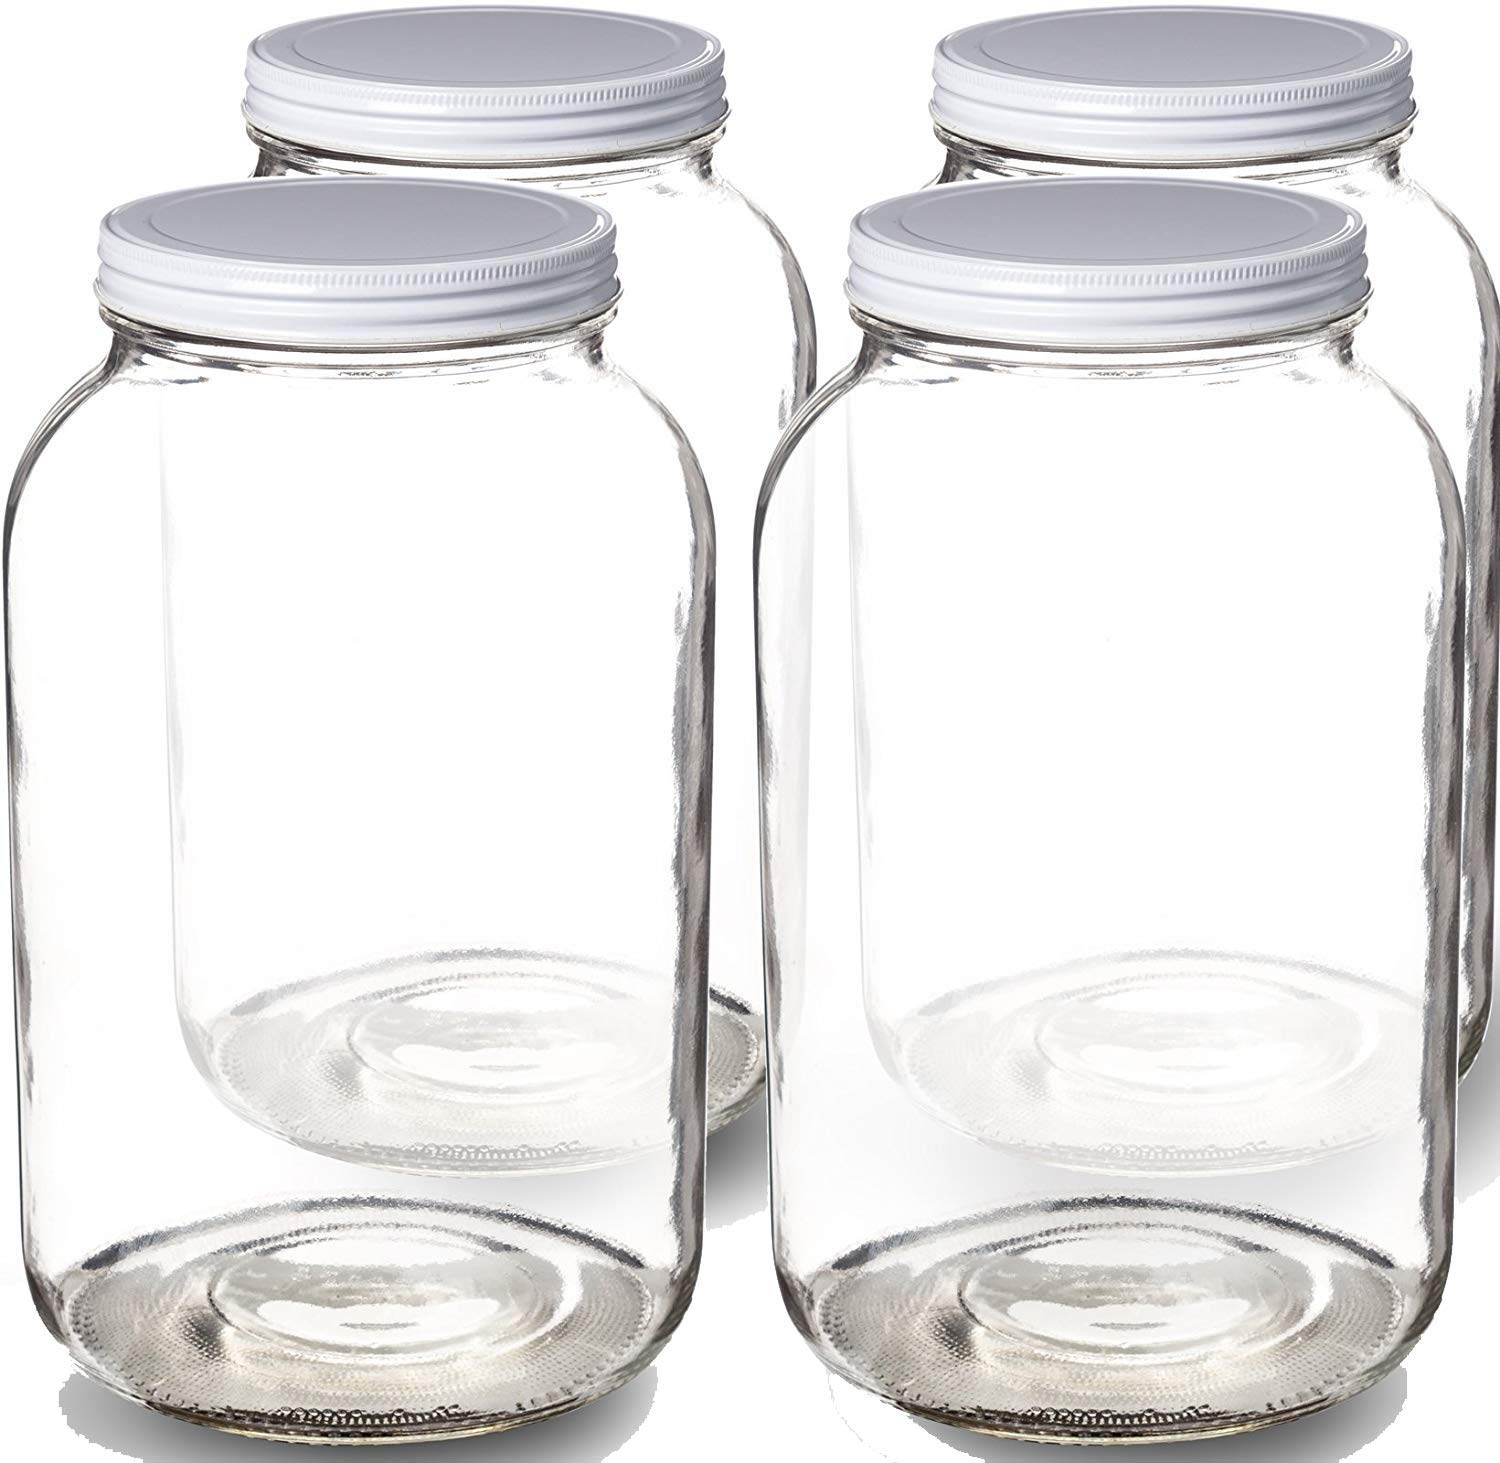 Paksh Novelty 1-Gallon Glass Jar Wide Mouth with Airtight Metal Lid - USDA Approved BPA-Free Dishwasher Safe Mason Jar for Fermenting, Kombucha, Kefir, Storing and Canning Uses, Clear. PN-1GM4